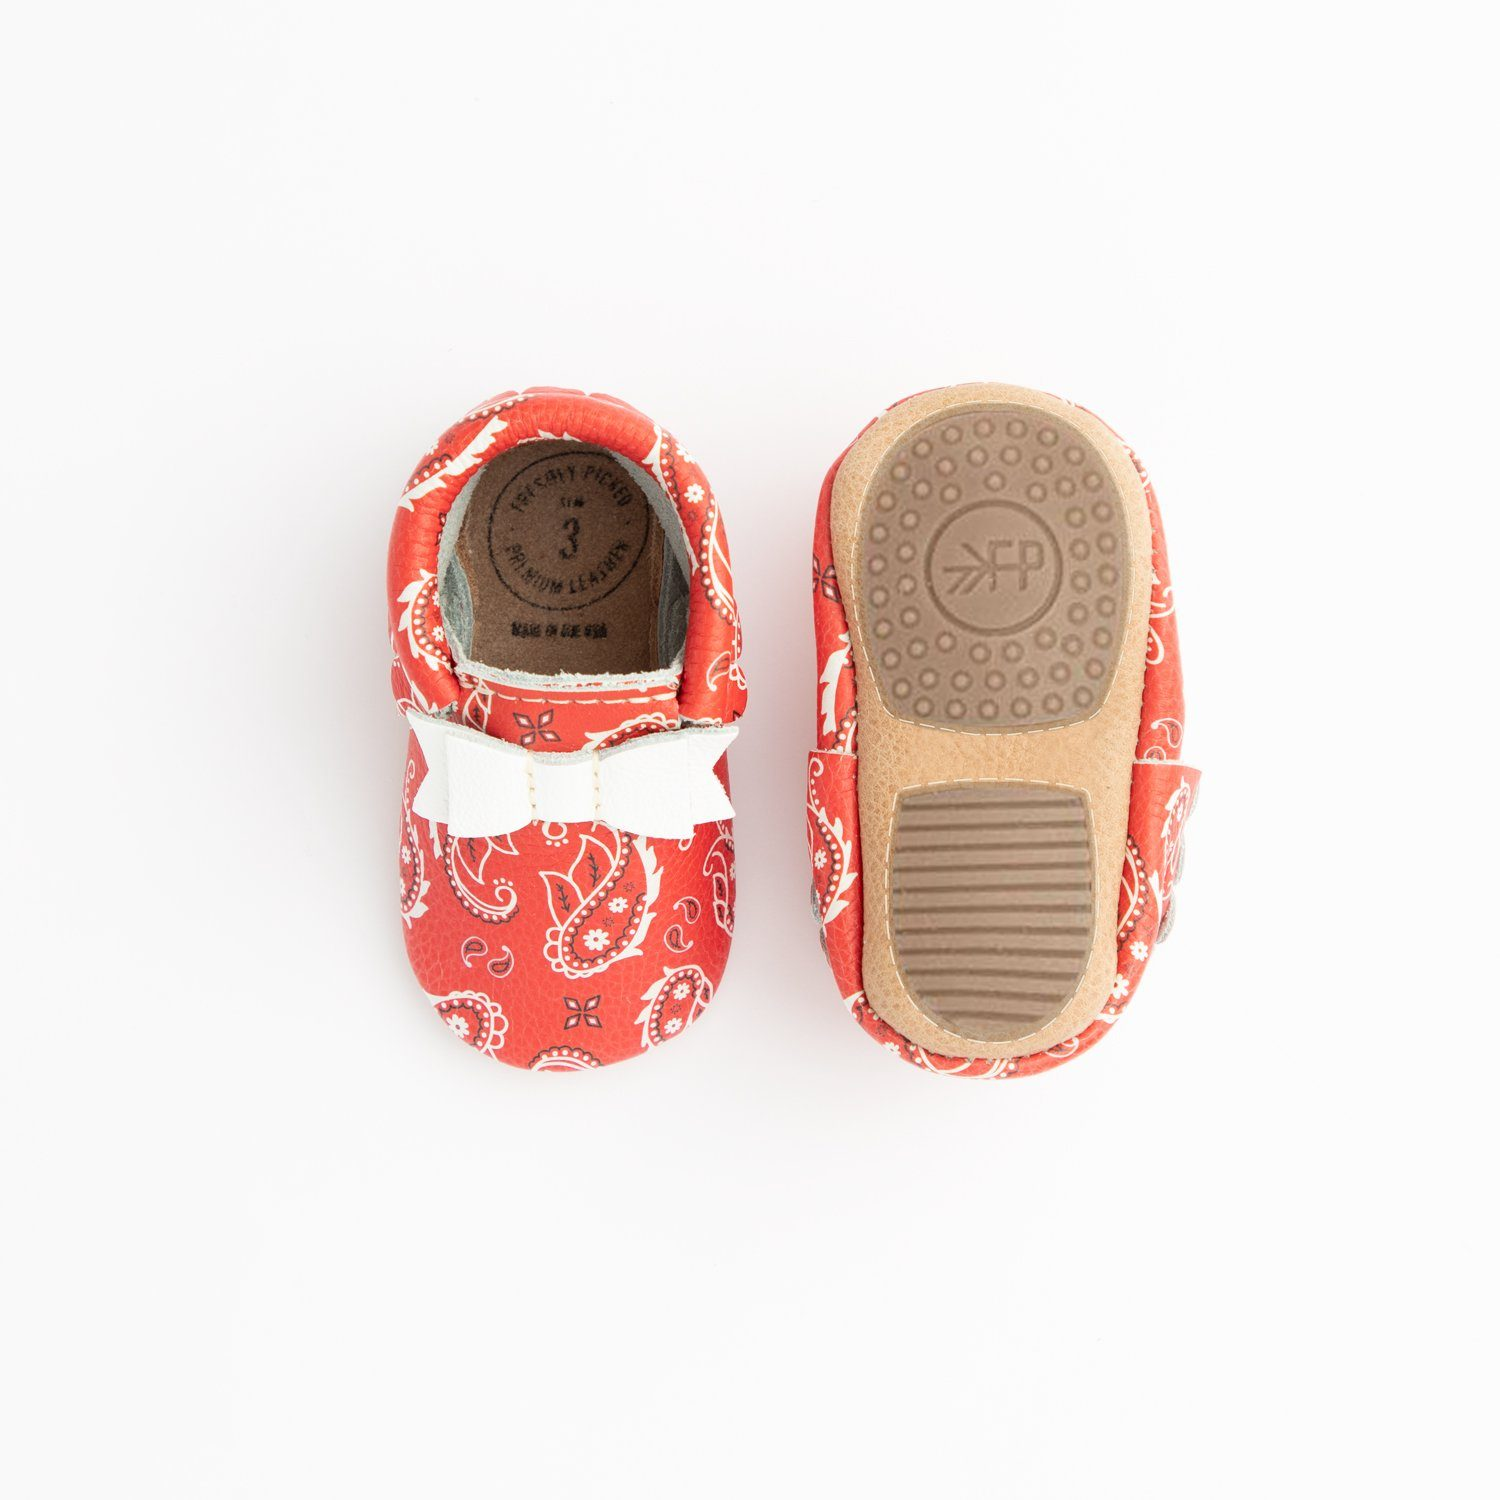 Red Bandana Bow Mocc Mini Sole Mini Sole Bow Moccasin Mini soles